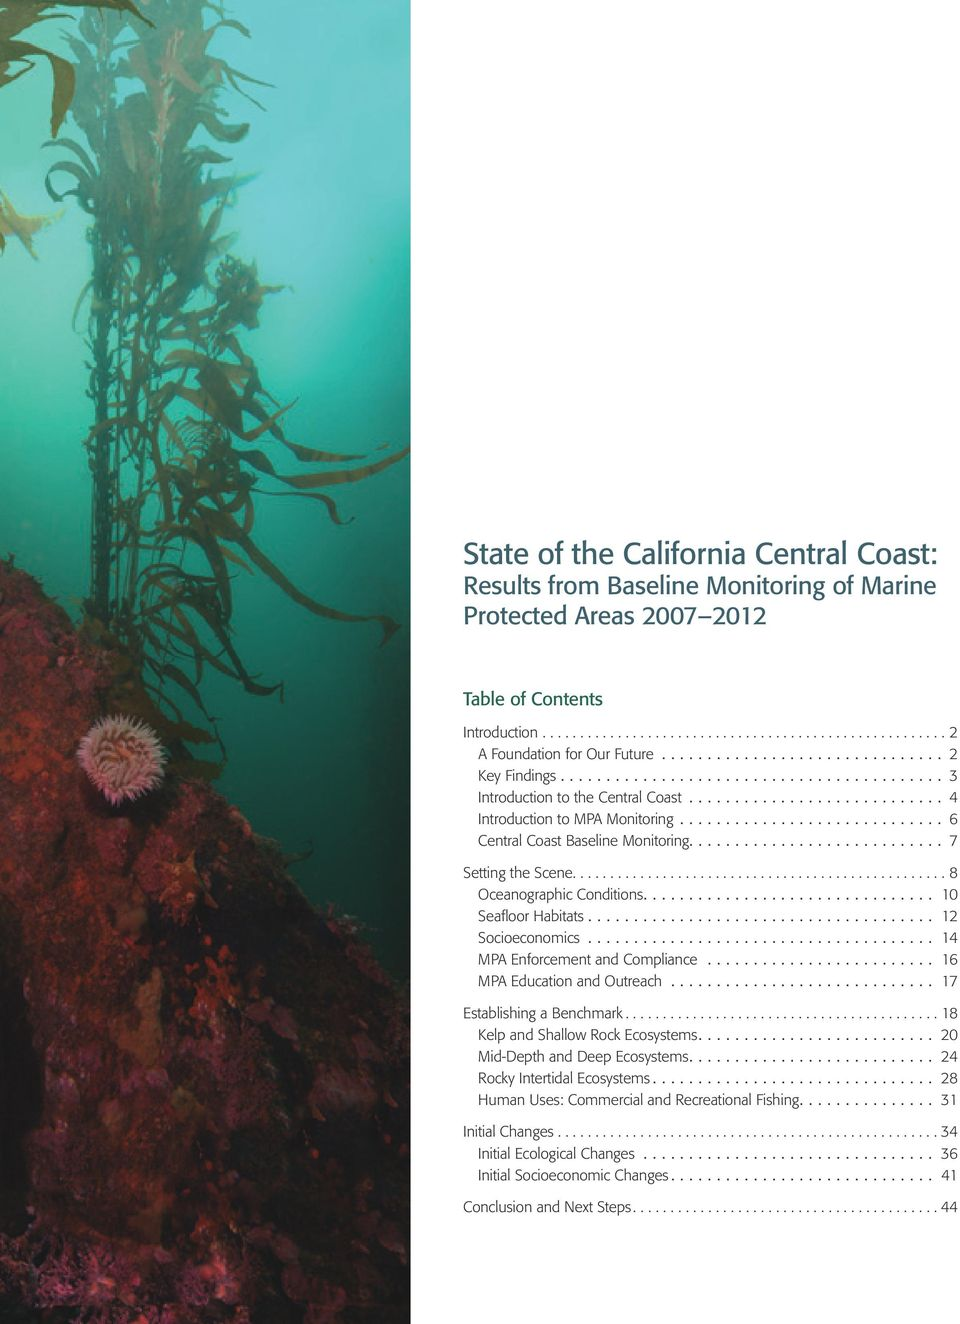 .. 12 Socioeconomics... 14 MPA Enforcement and Compliance... 16 MPA Education and Outreach... 17 Establishing a Benchmark...18 Kelp and Shallow Rock Ecosystems.... 2 Mid-Depth and Deep Ecosystems.